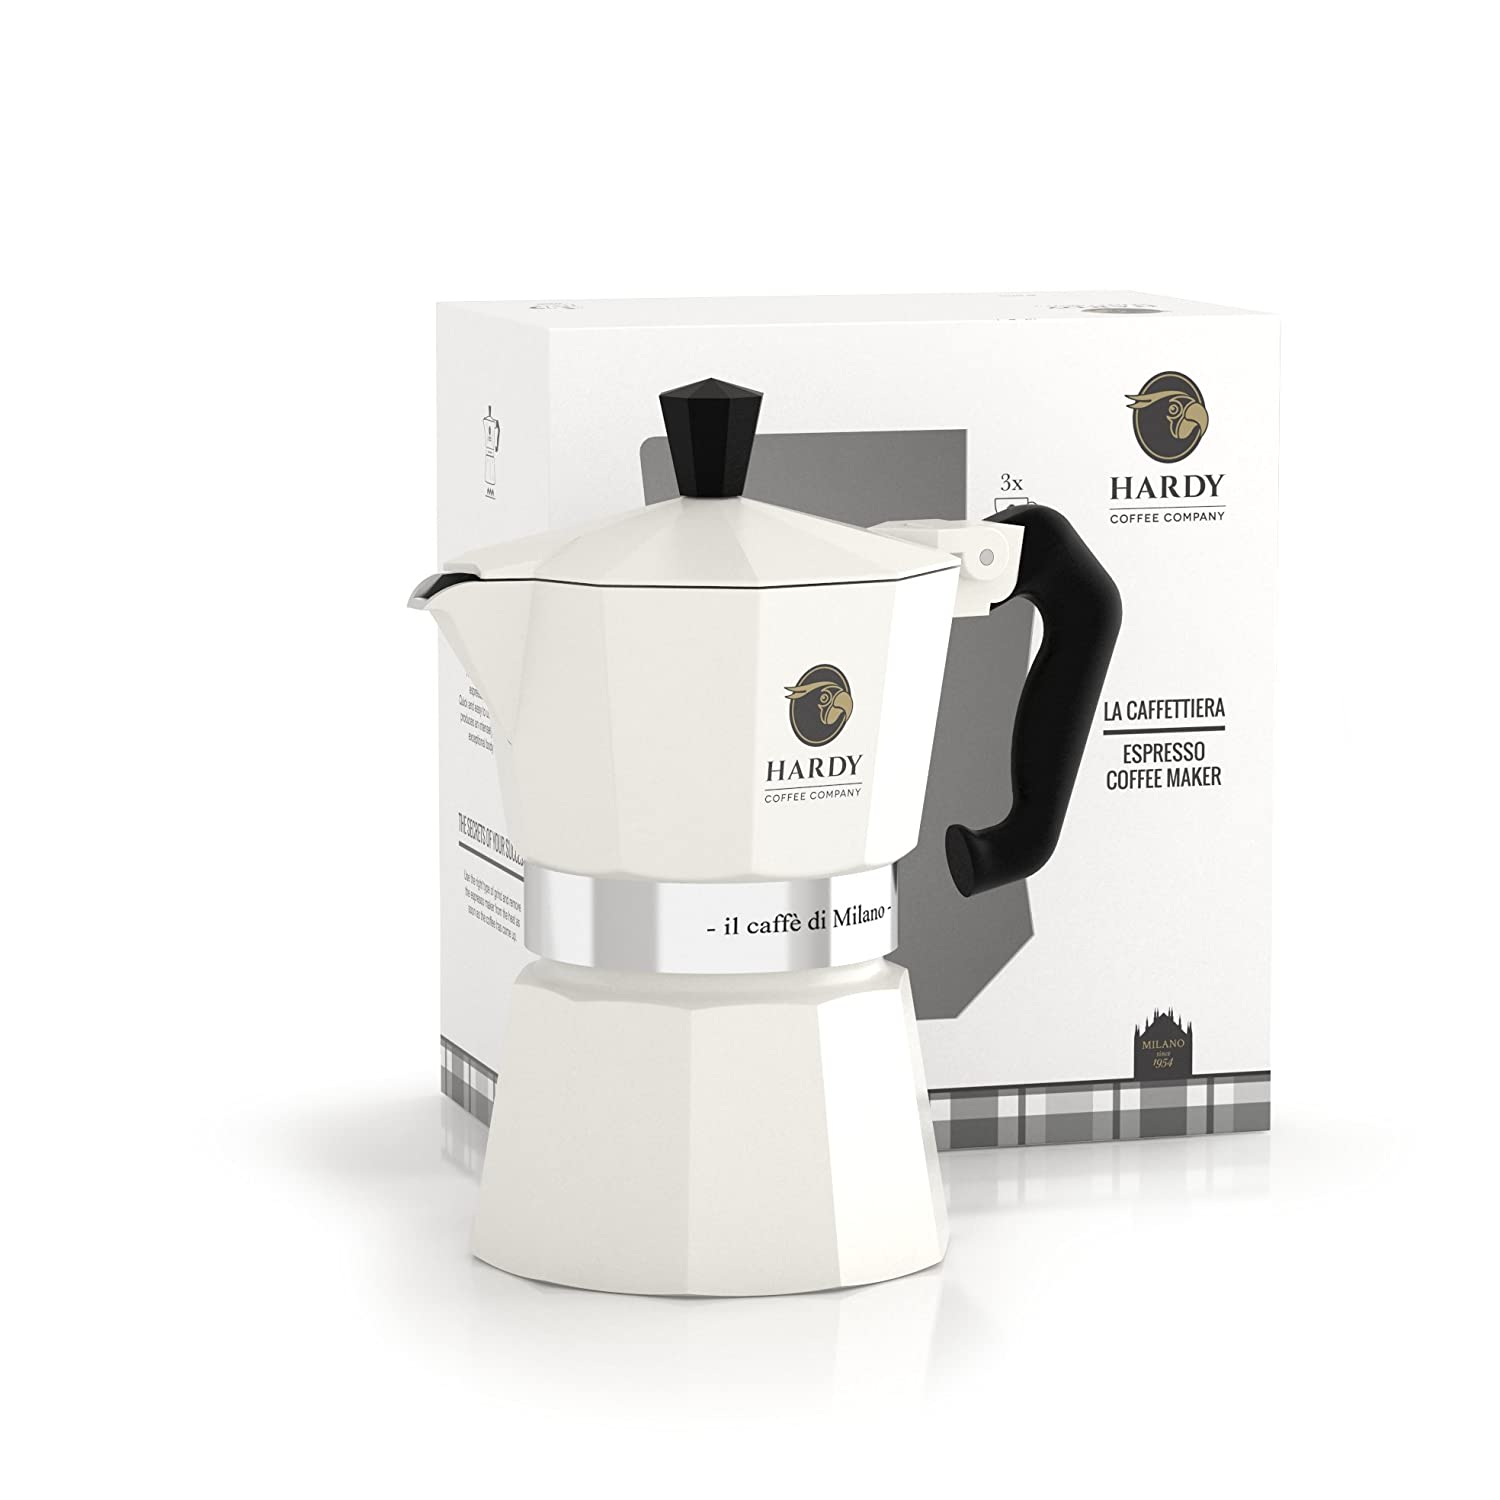 Coffee White Hardy Moka Cafetiere 3 Cup: Amazon.co.uk: Kitchen & Home